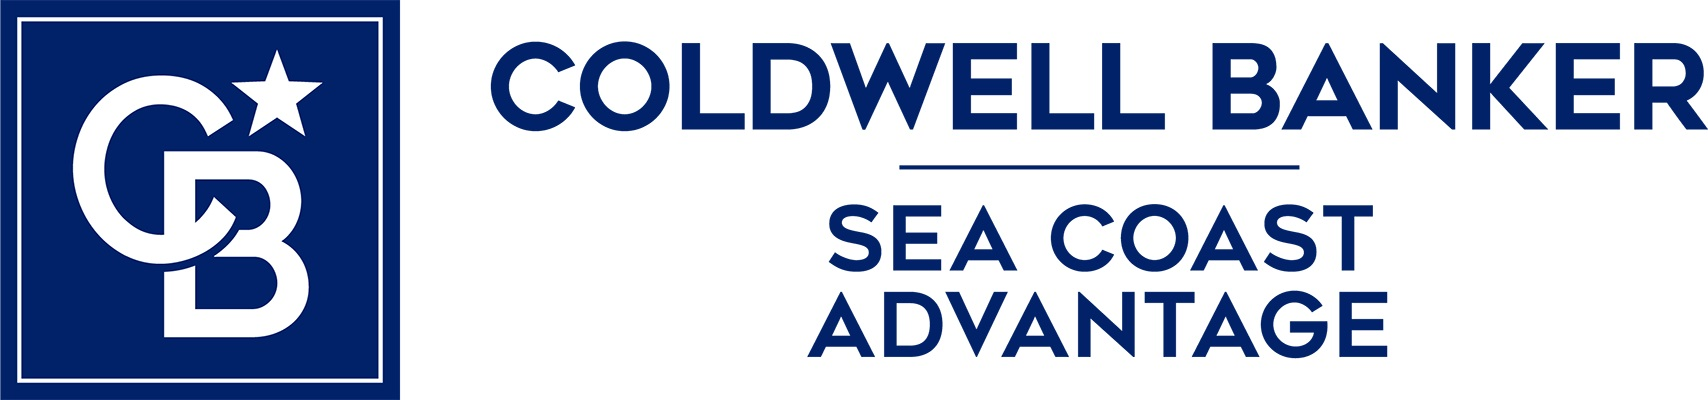 Barbara Andrews - Coldwell Banker Sea Coast Advantage Realty